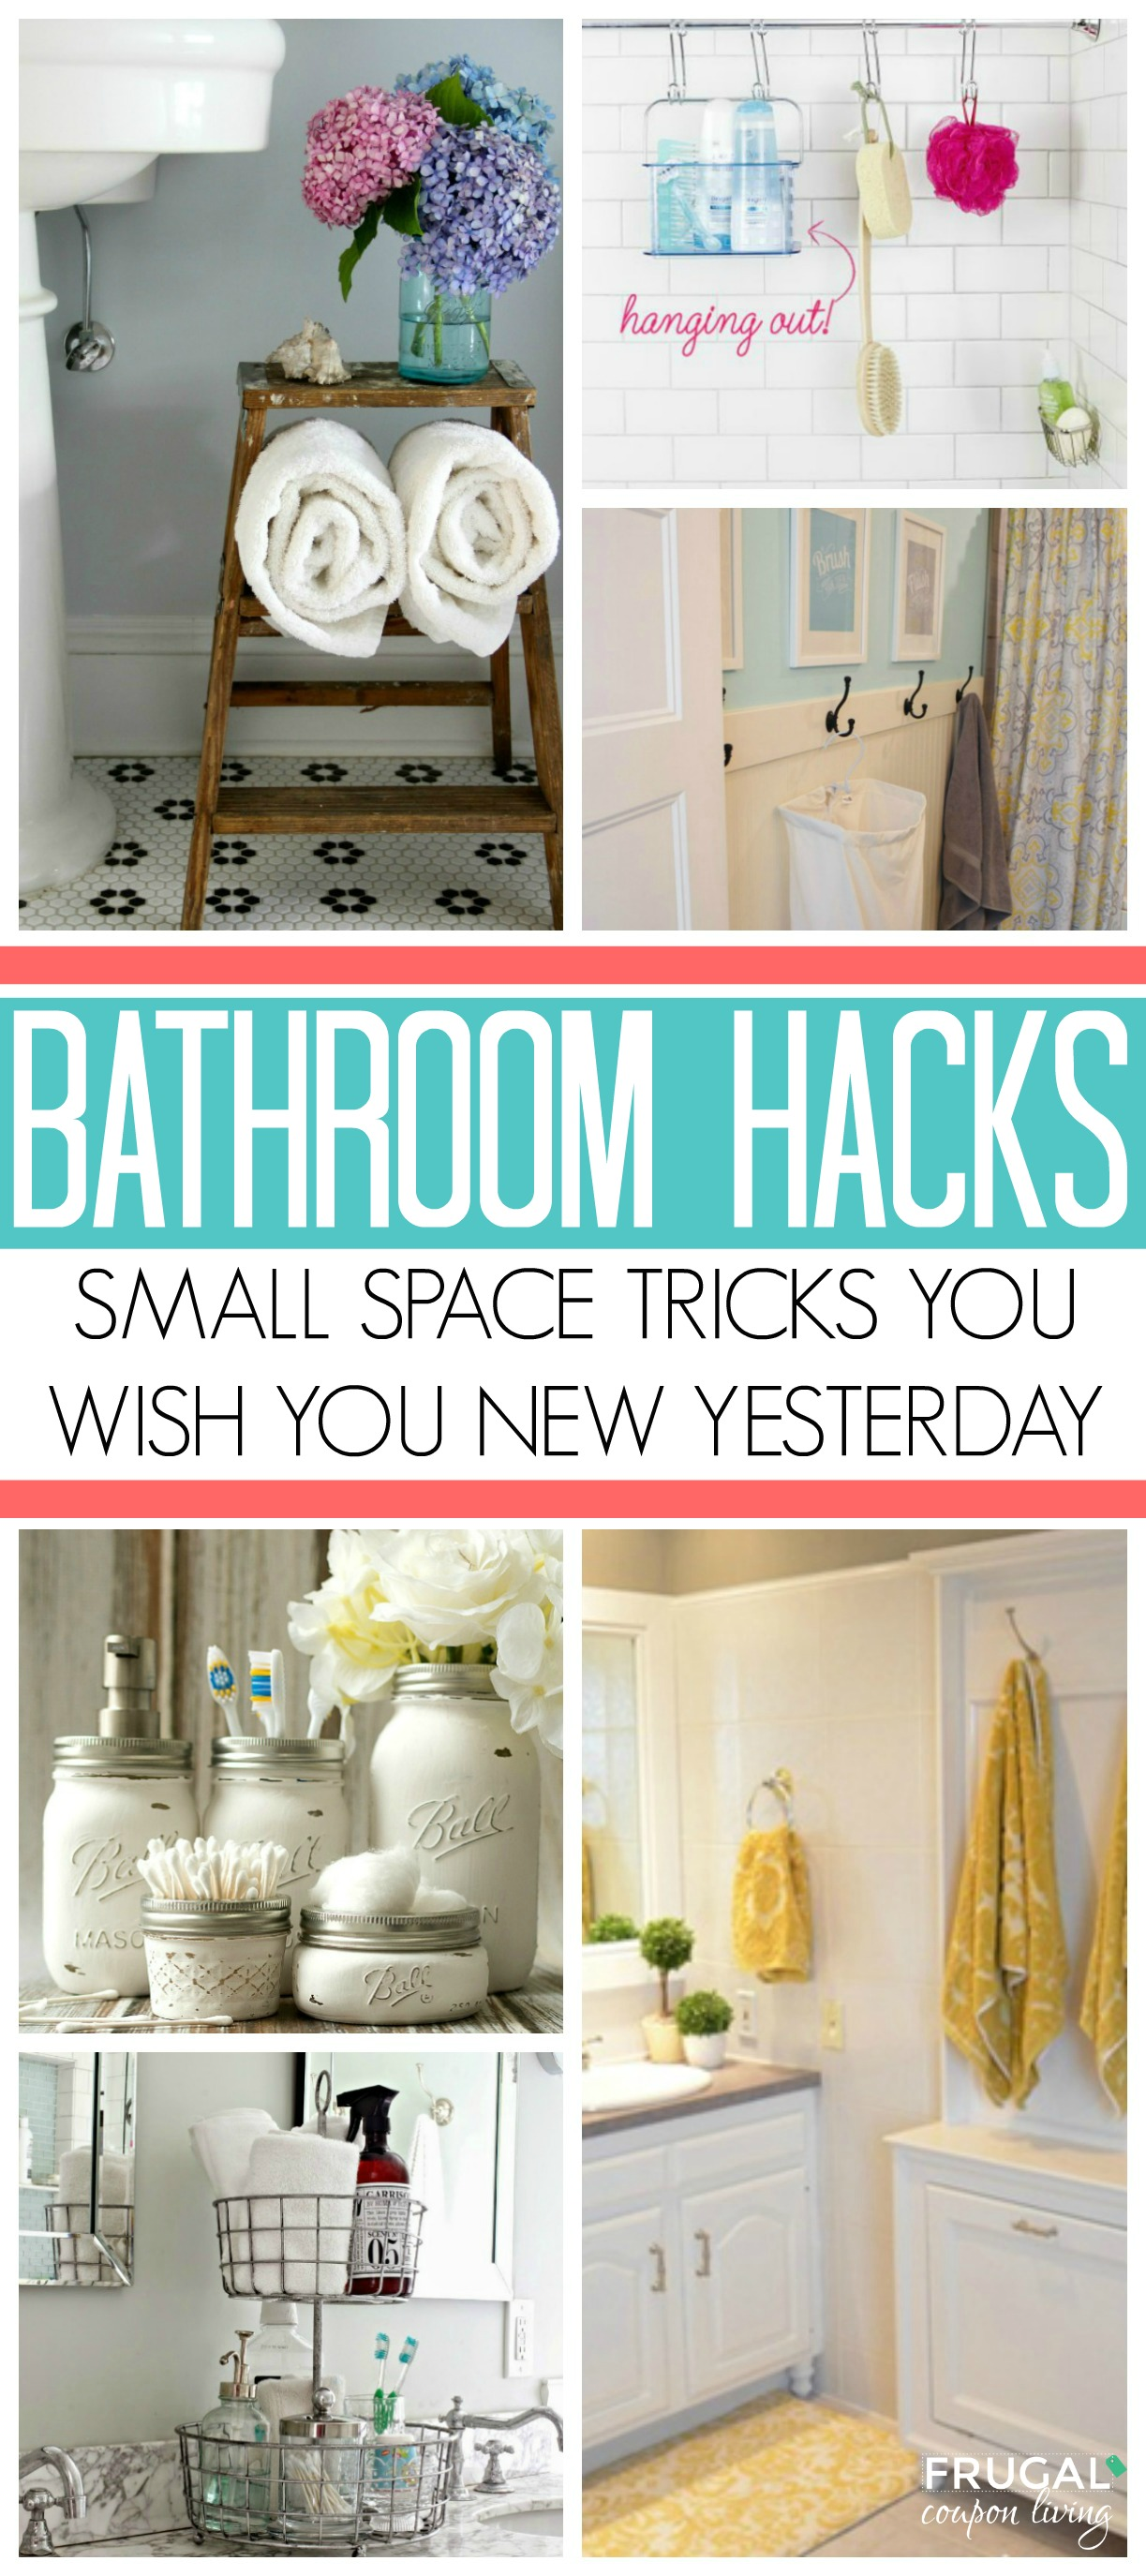 Small Space Bathroom Storage Ideas: Small Space Hacks & Tricks